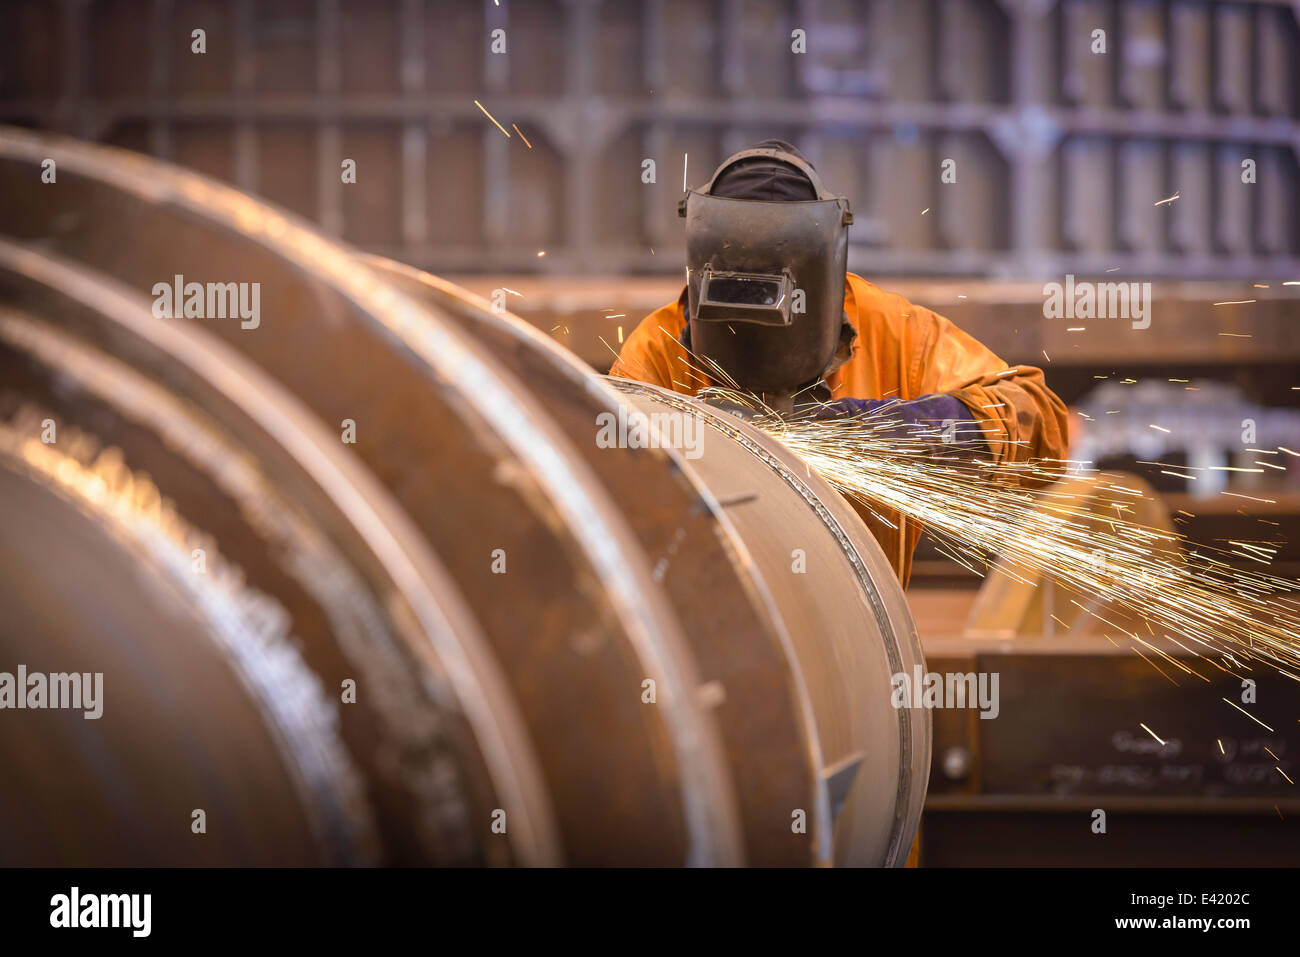 Worker grinding metal construction in marine fabrication factory - Stock Image